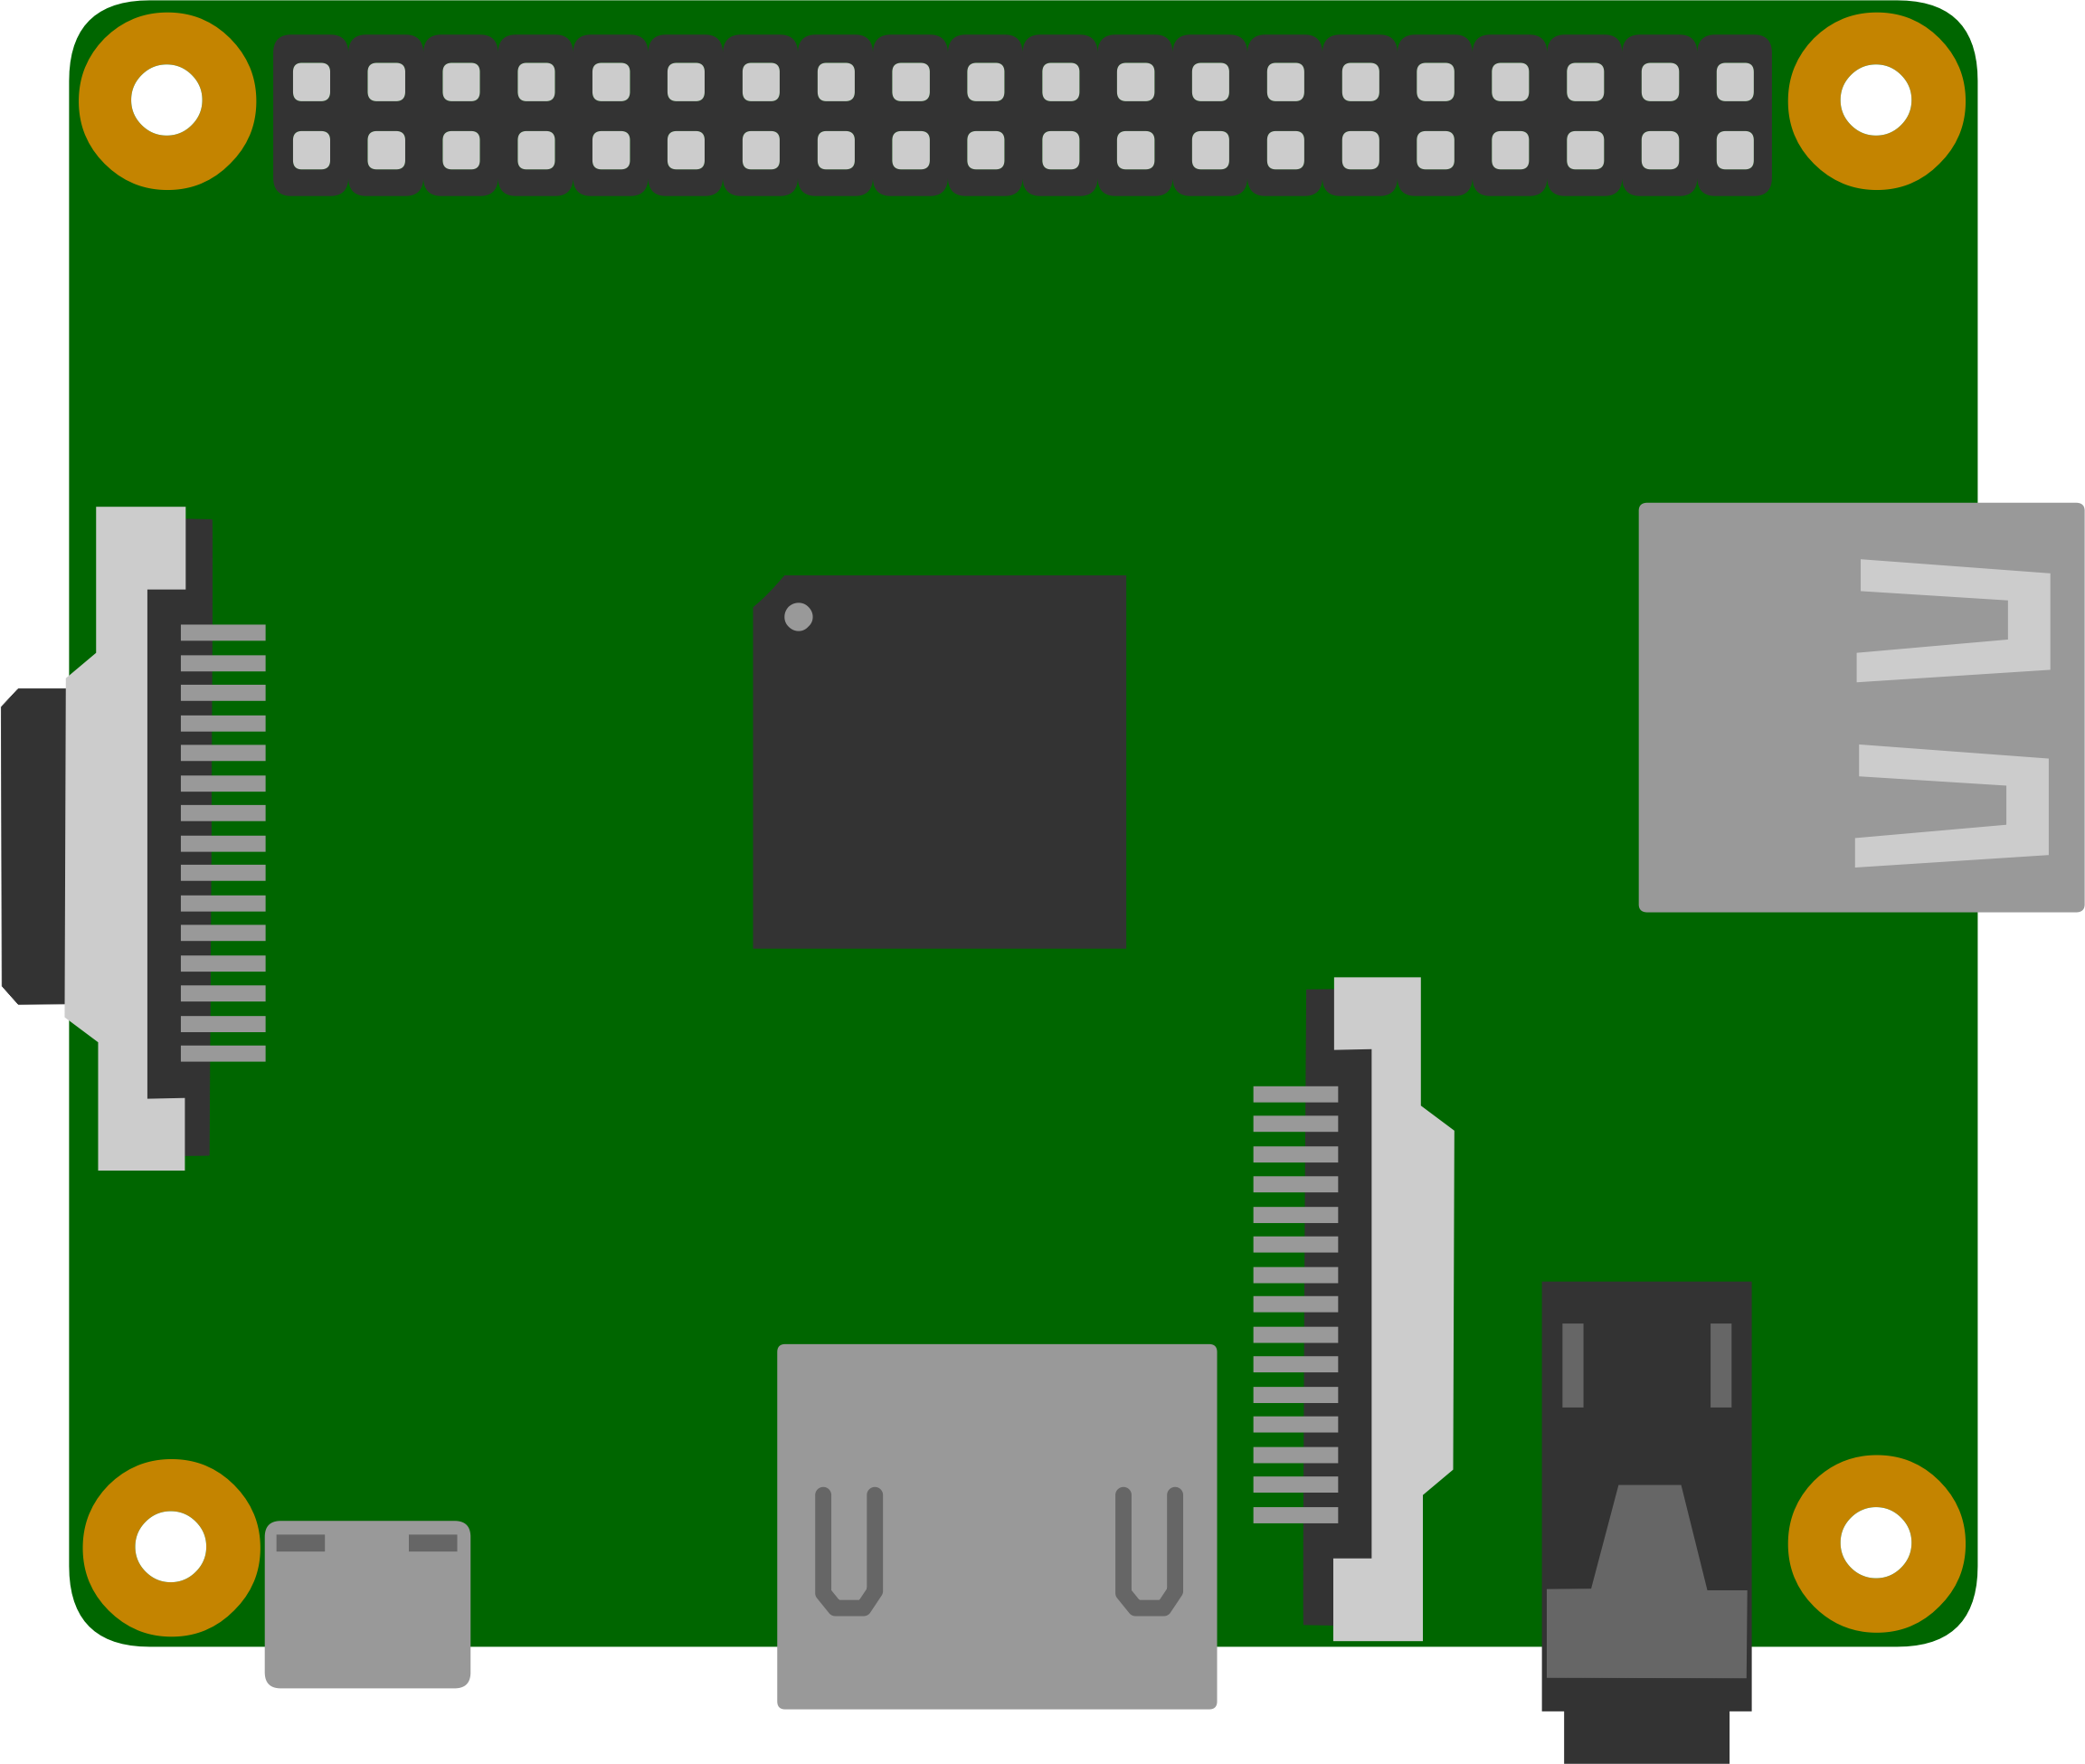 Raspberry pi 2 clipart image free download Raspberry pi clipart - ClipartFest image free download